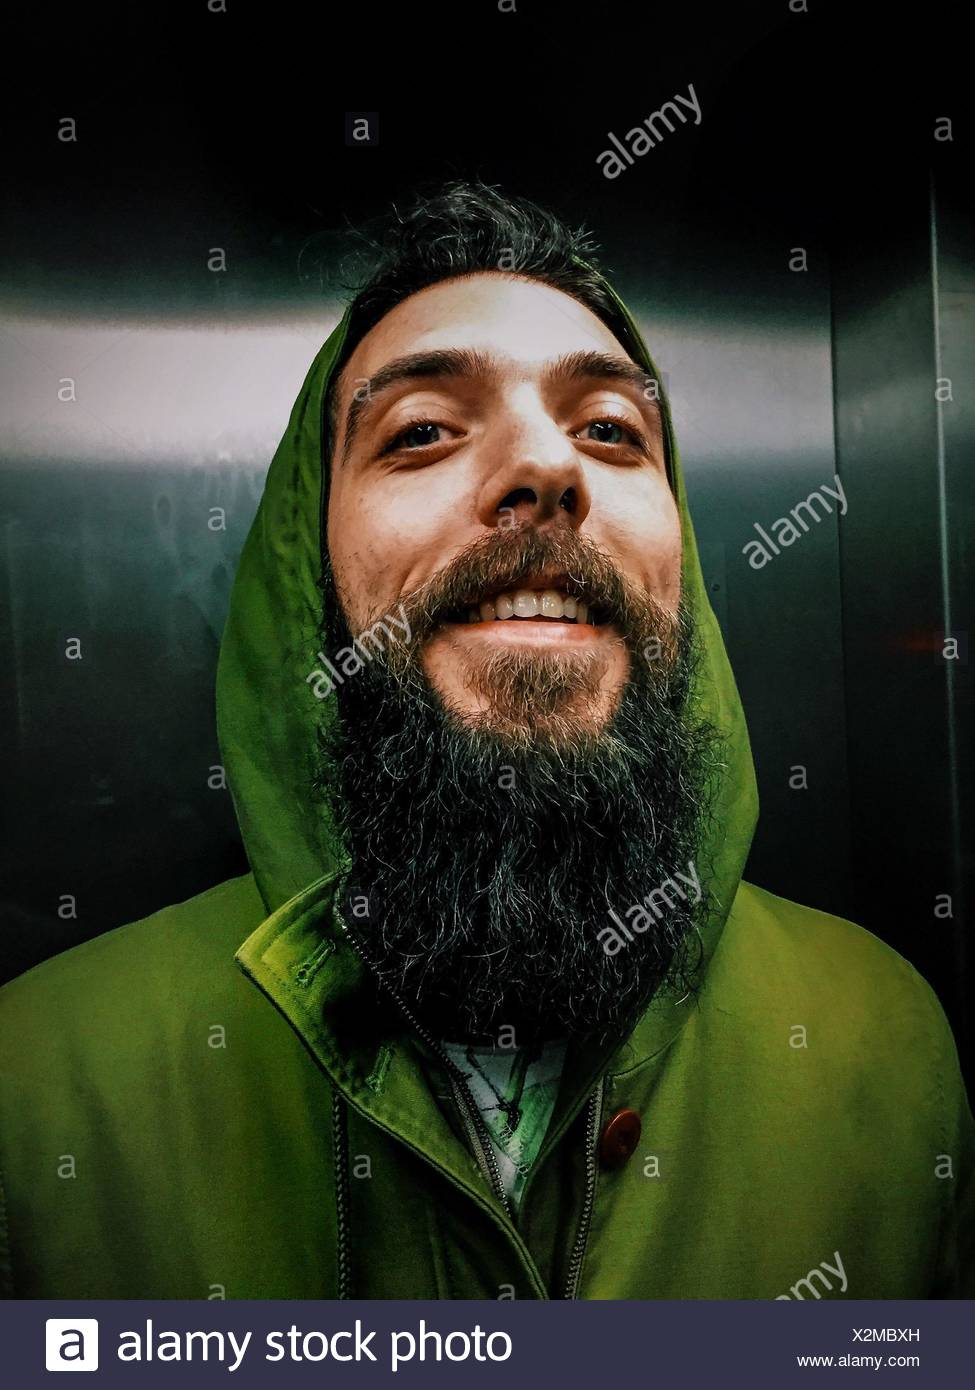 Young Cheerful Man With Long Beard In Elevator - Stock Image